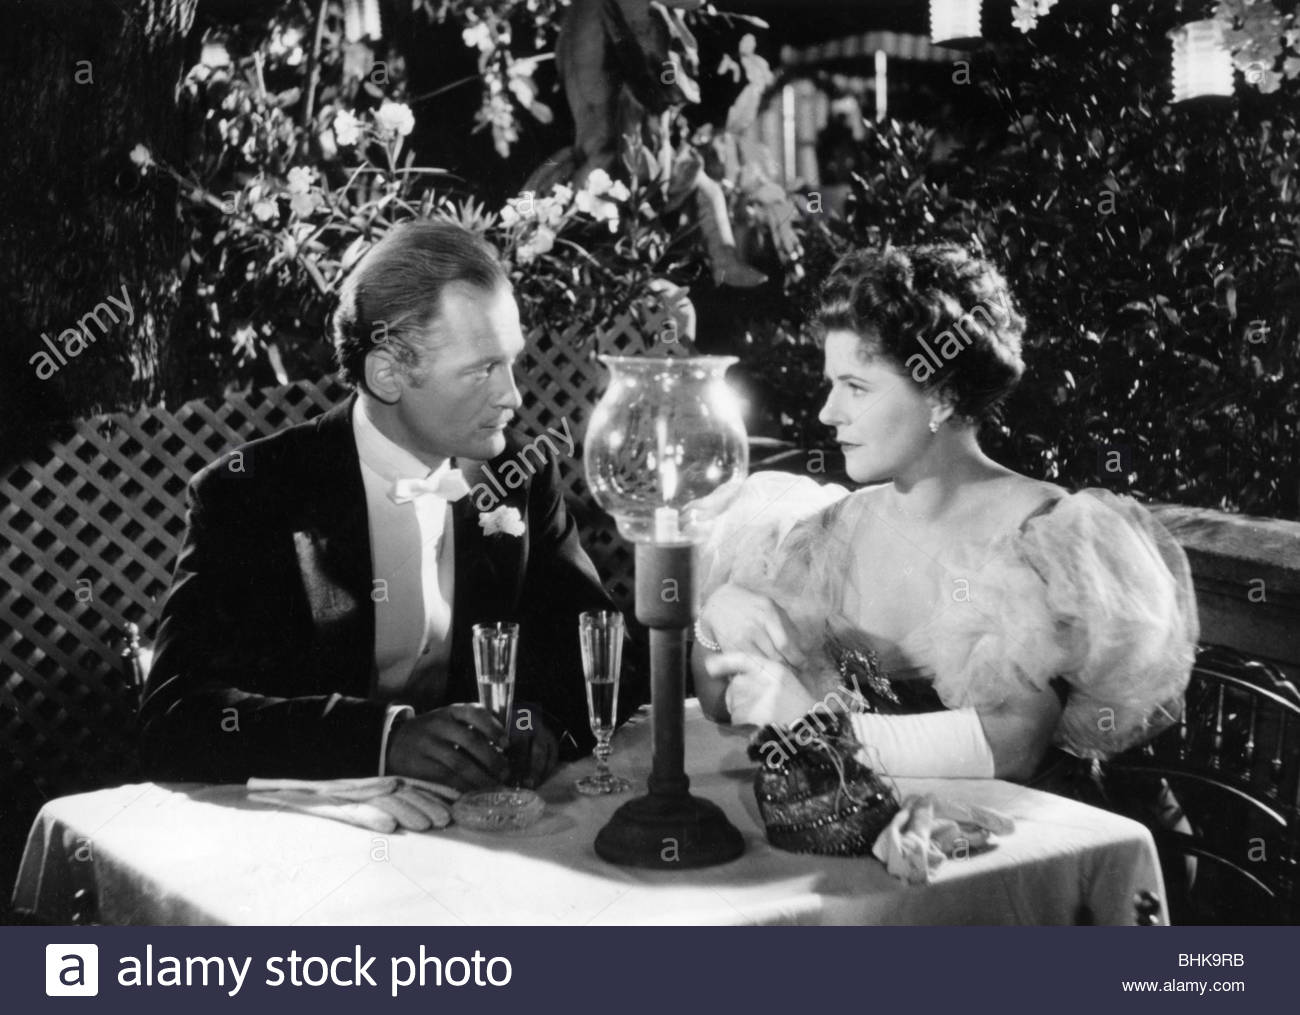 movie, 'The Angel with the Trumpet', DEU 1948, director: Karl Hartl, scene with: Curd Juergens, Paula Wessely, - Stock Image